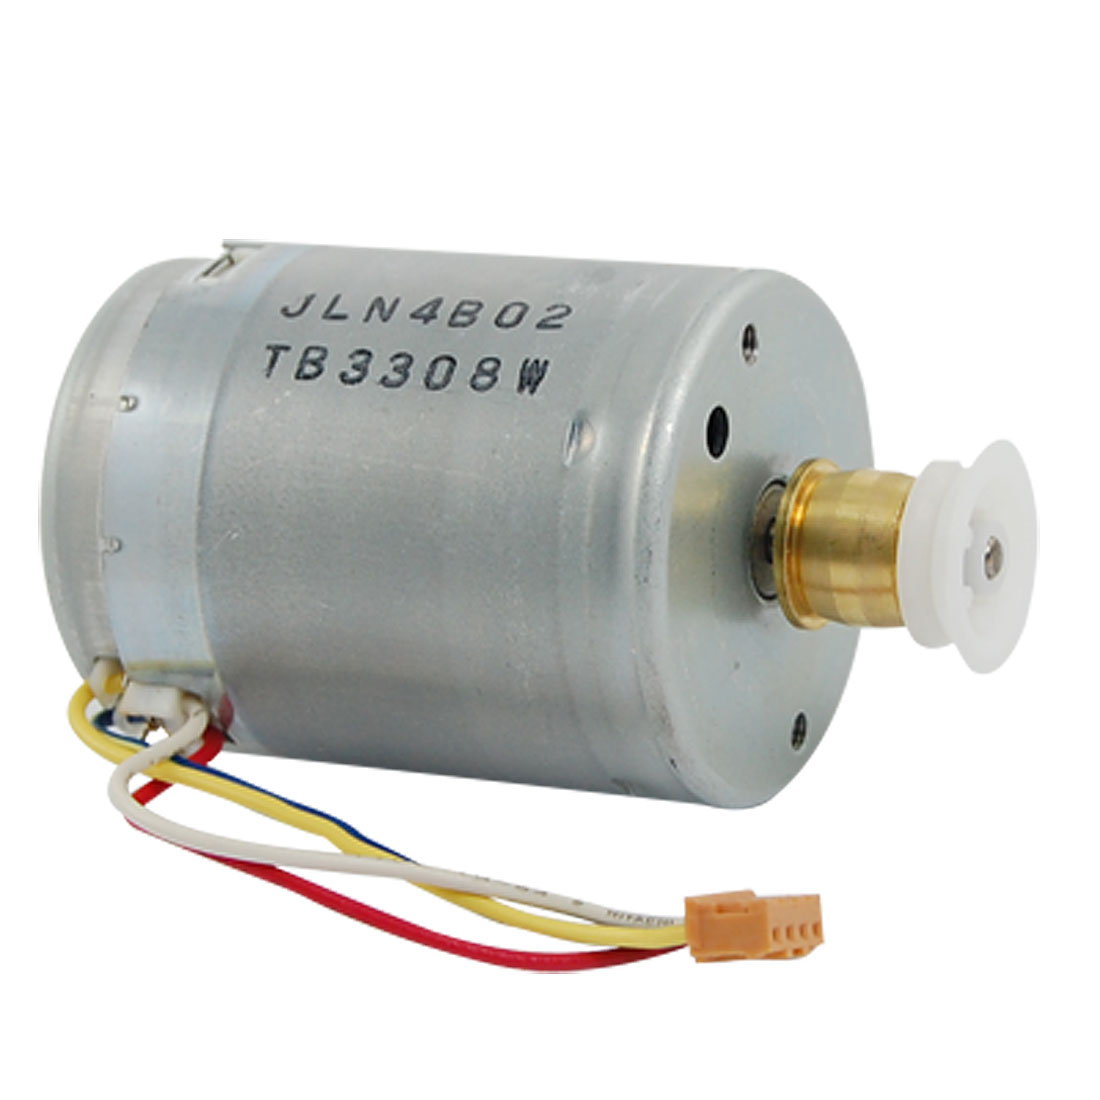 3500RPM DC 12V 0.1A Mini Motor for Electric Cars DIY Toys